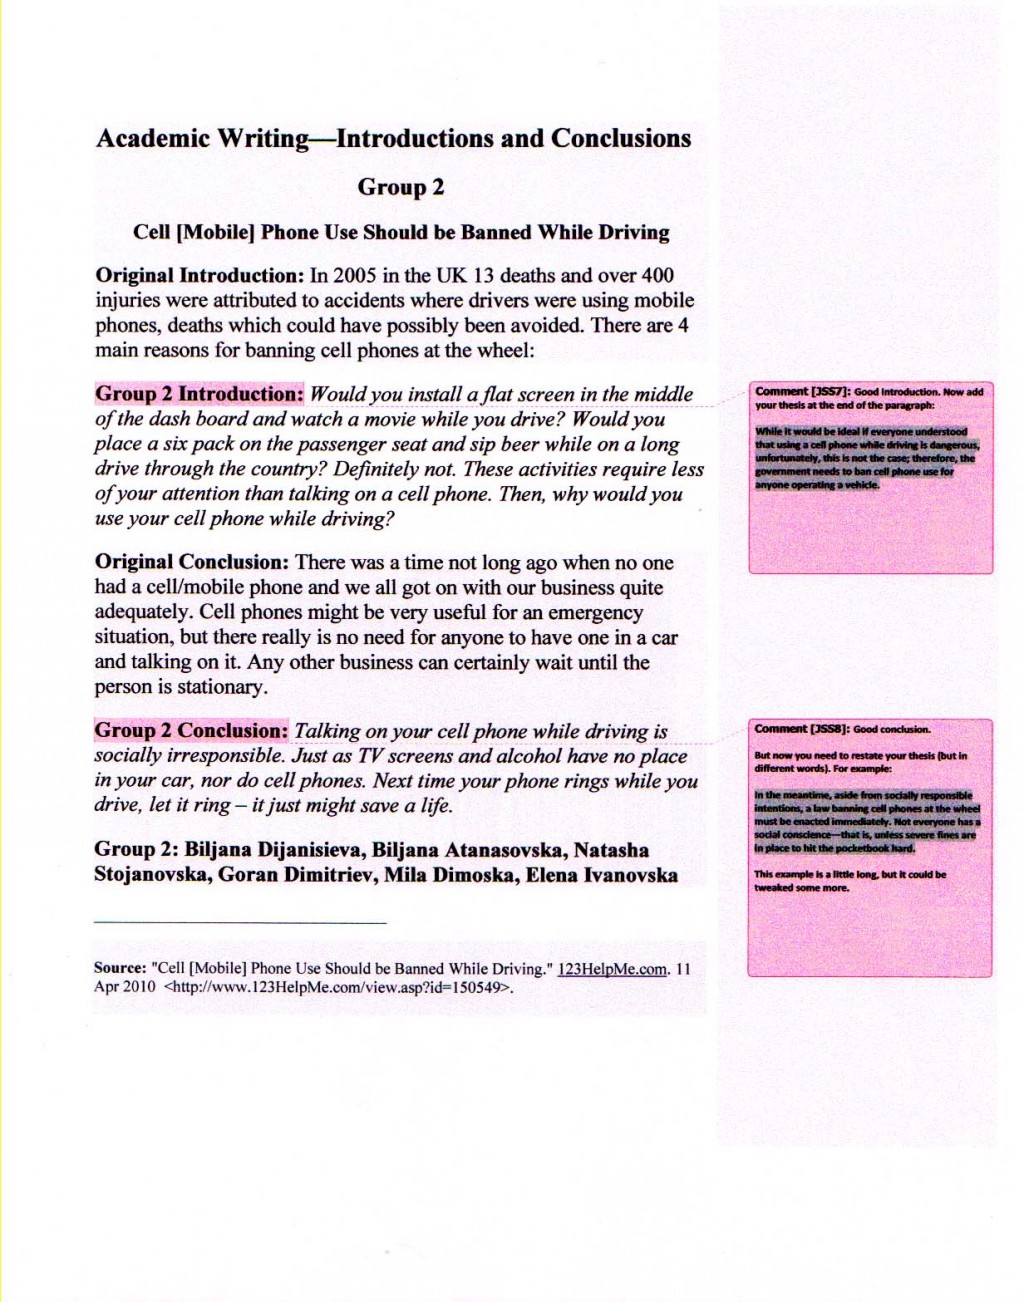 013 Essay Example Academicwriting Blogintrosconclusions Group2 Conclusion To Outstanding Persuasive Good A The Strongest Large